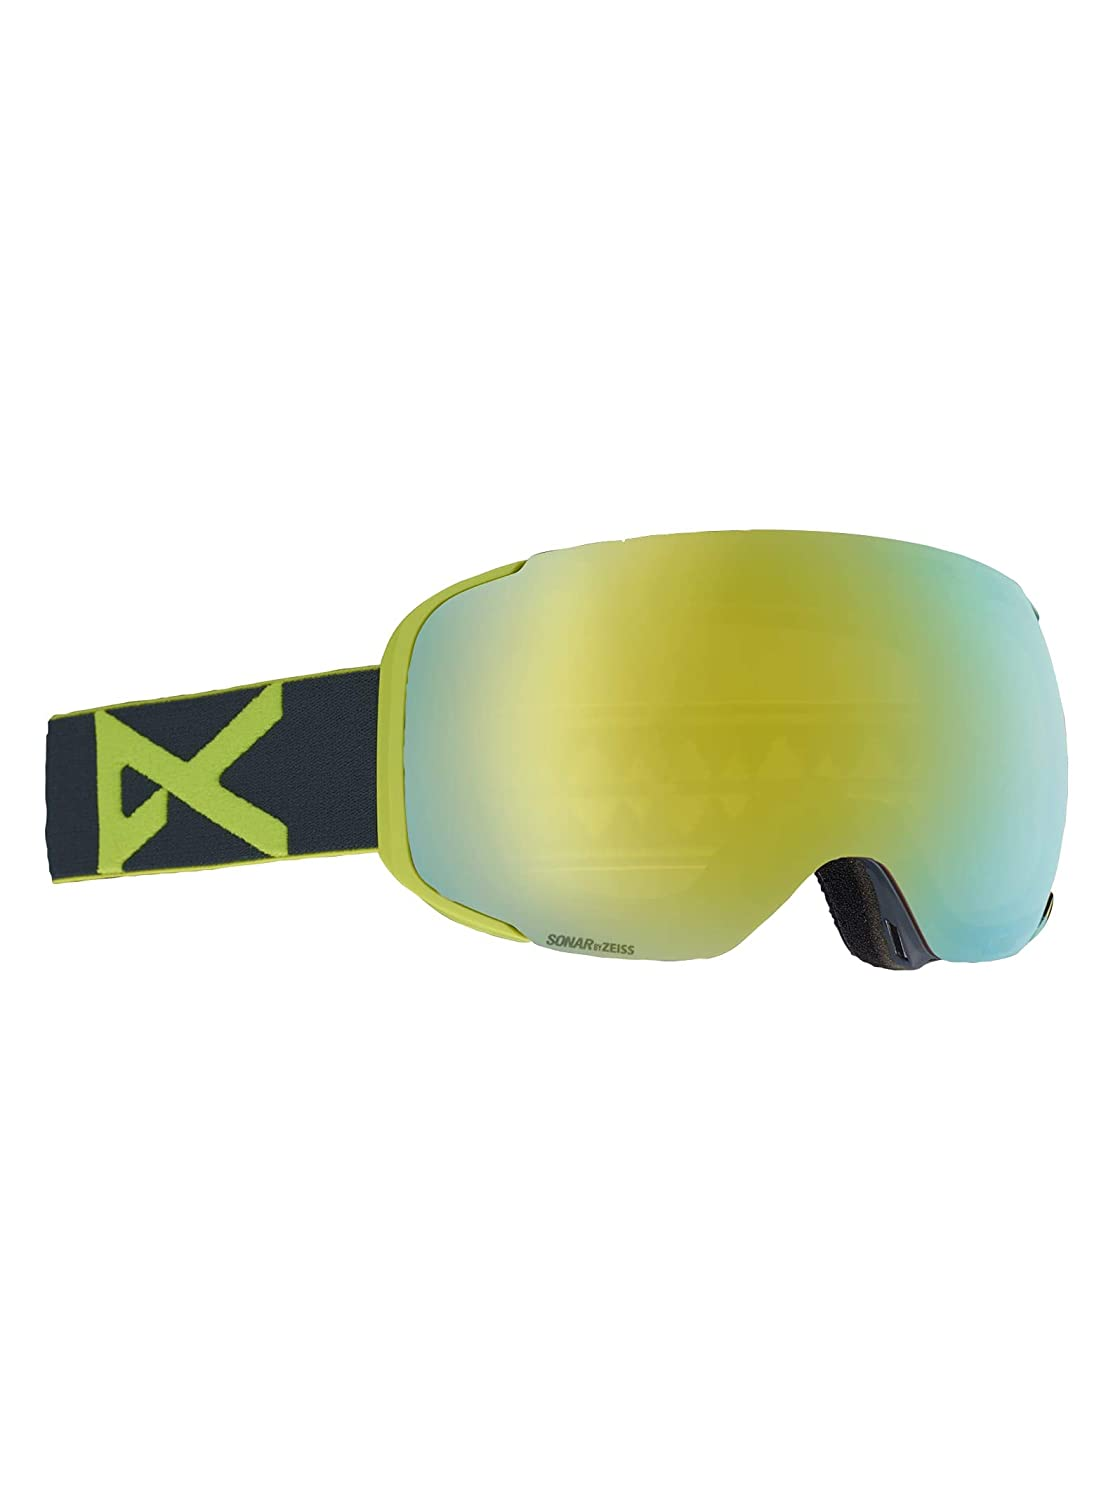 91d70e8eff6c Amazon.com   Anon Men s Asian Fit M2 Fog Free Magnetic Lens Ski Snow Goggle  with MFI Mask   Sports   Outdoors